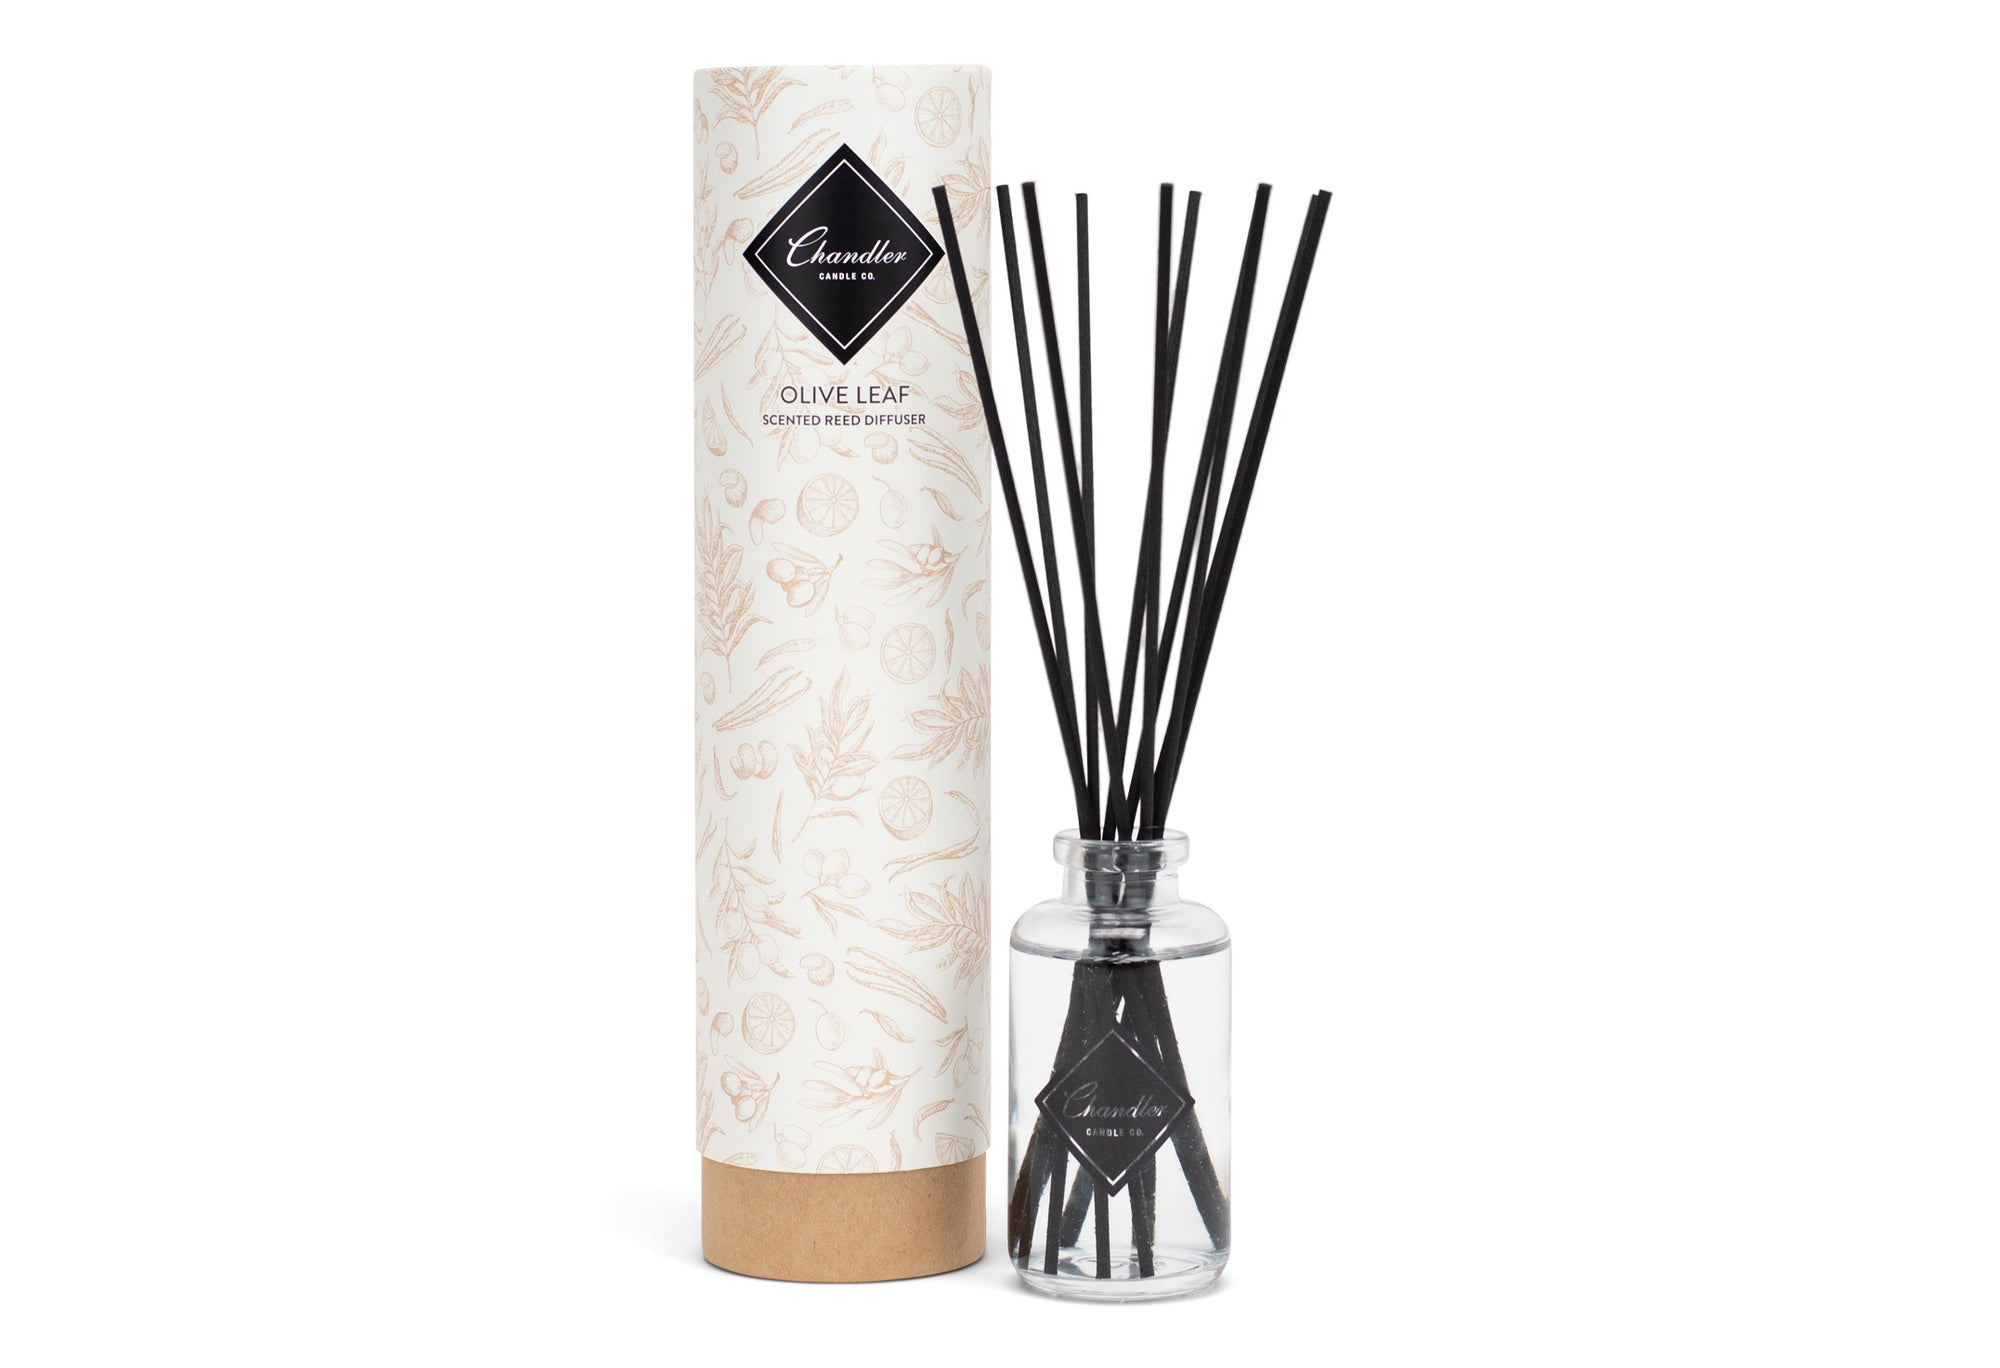 Olive Leaf Scented Reed Diffuser